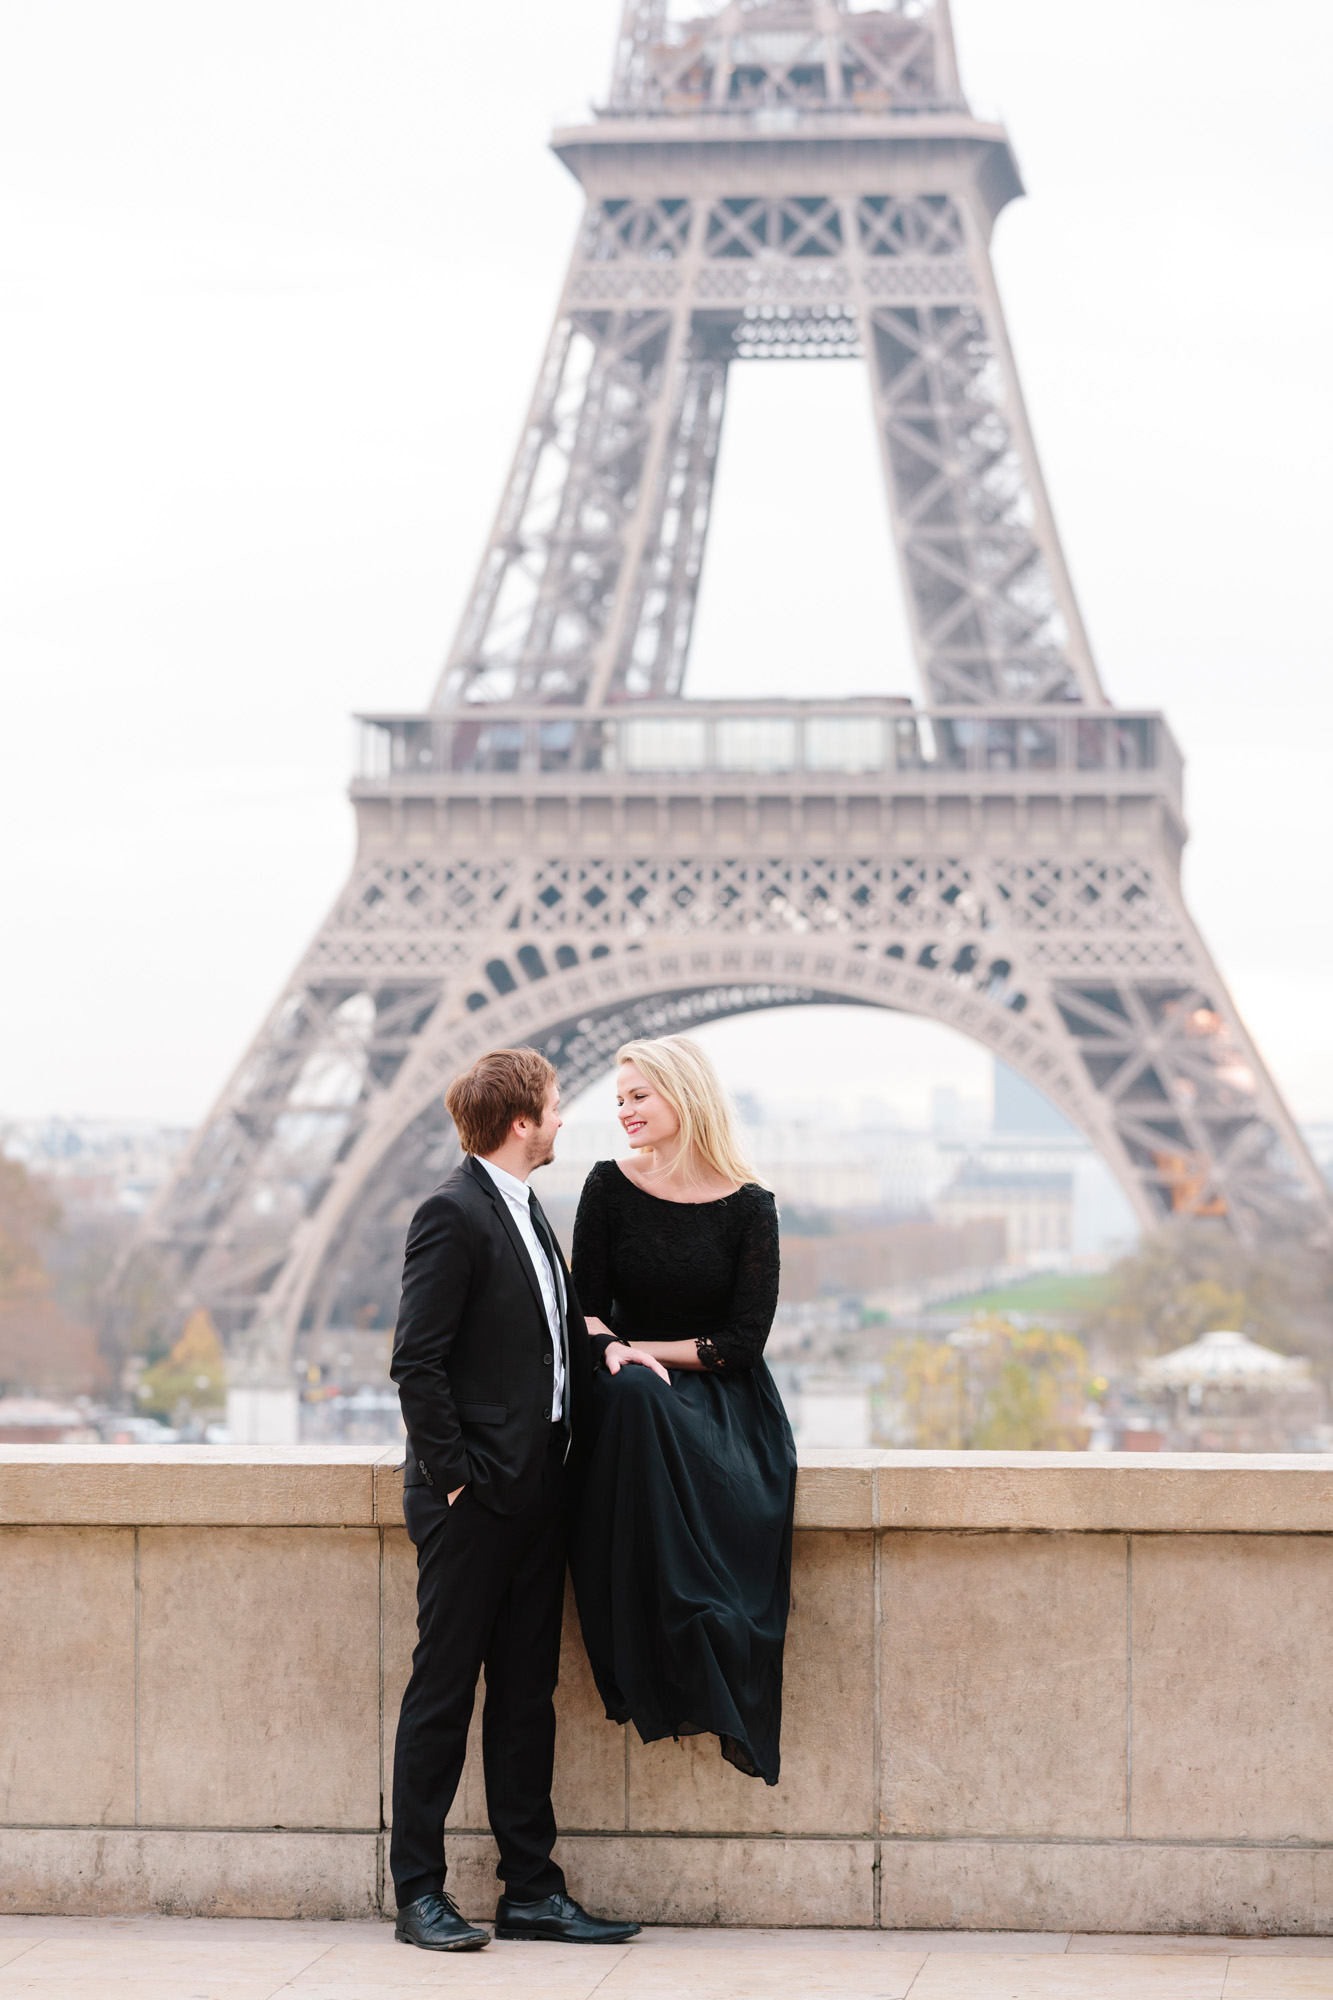 Couple engagement photoshoot at Trocadero with the view of the Eiffel Tower captured by Photographer in Paris Federico Guendel